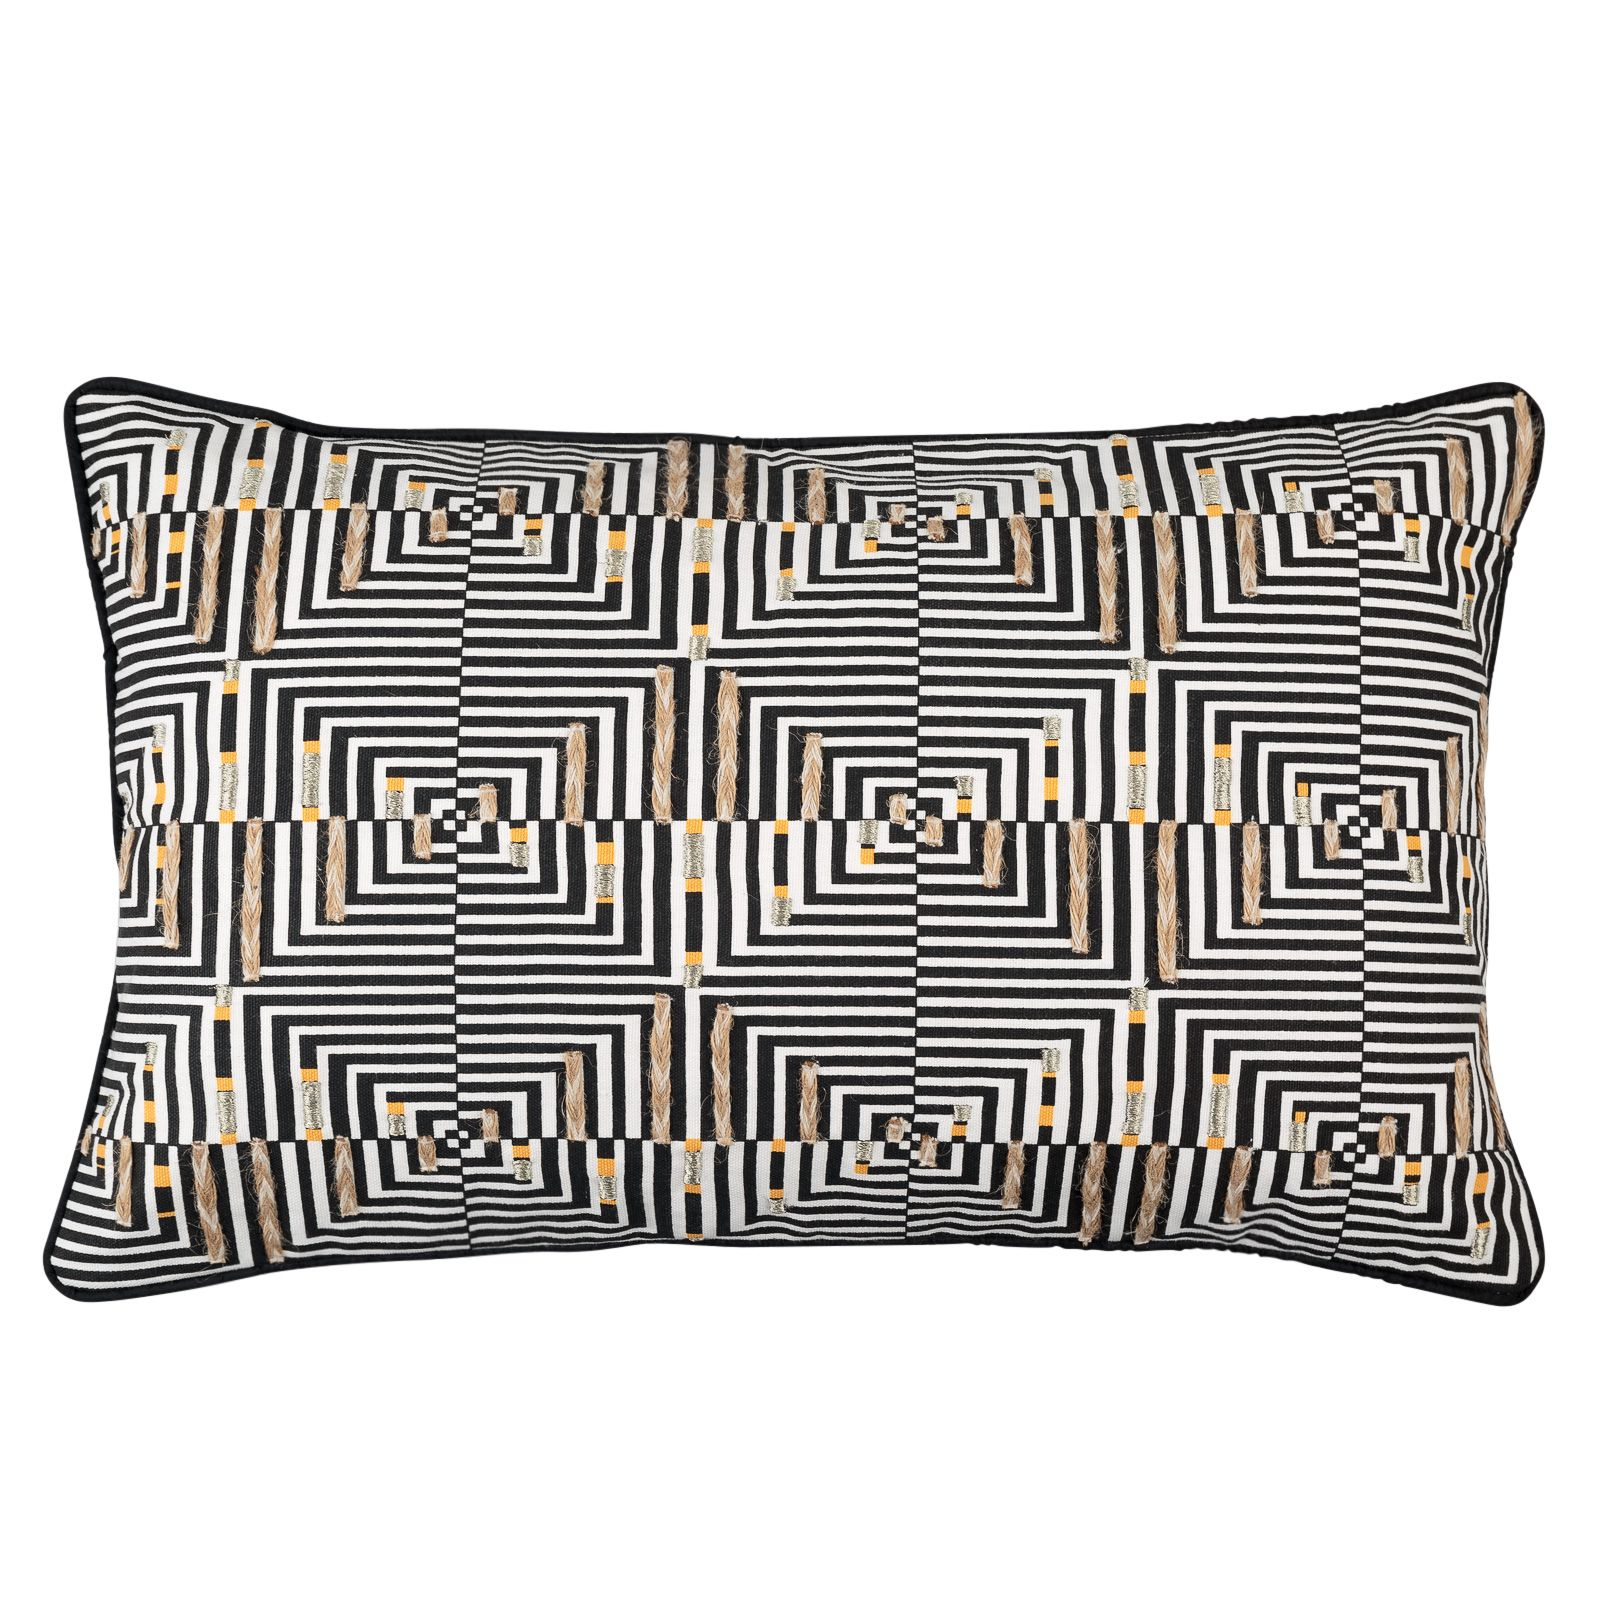 Gift ideas for Mother's Day - cushion